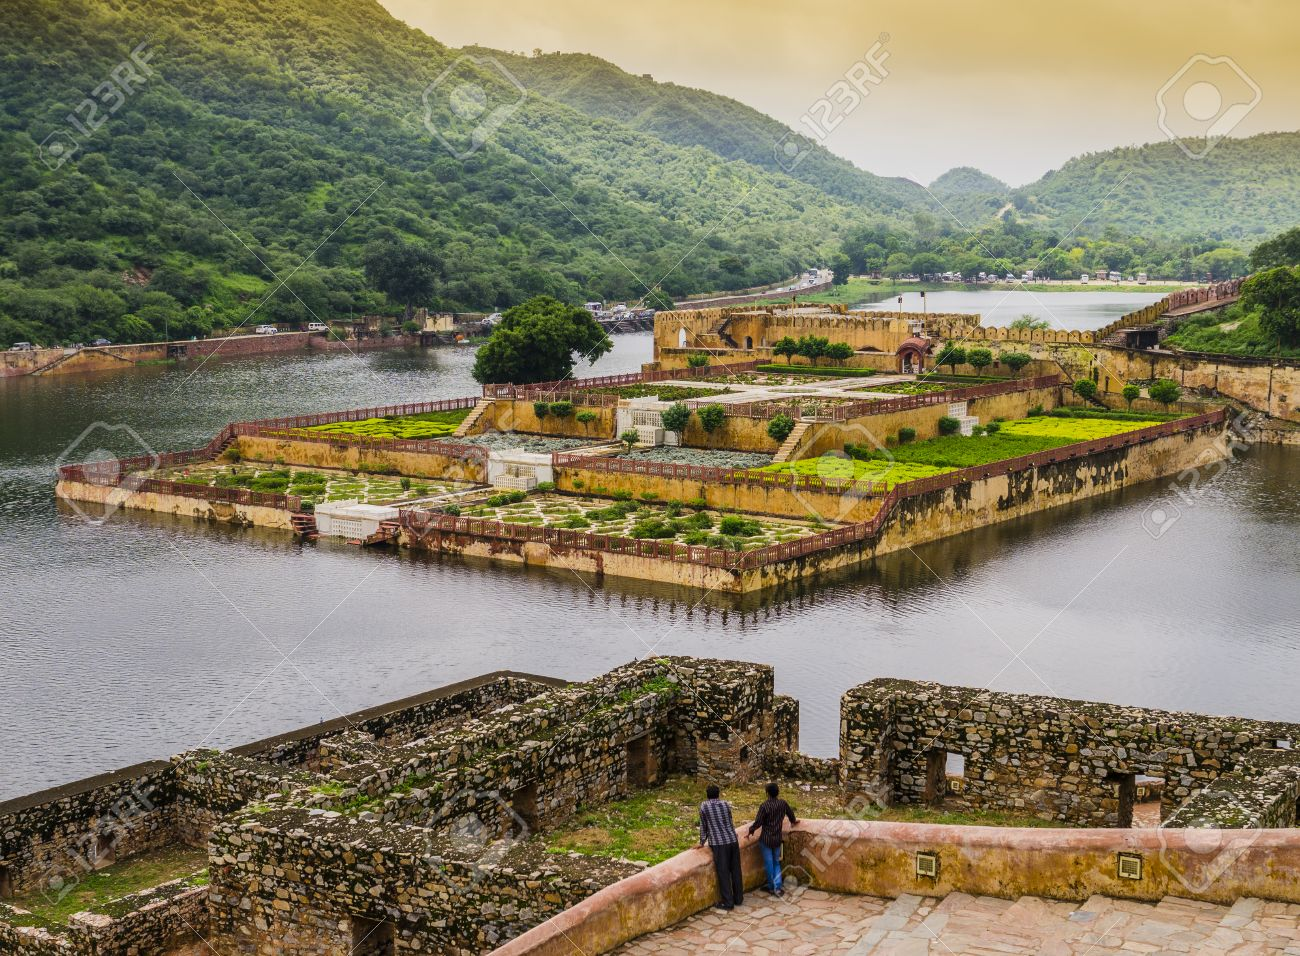 Amber Fort Gardens On Maota Lake, Jaipur, India Stock Photo, Picture ...